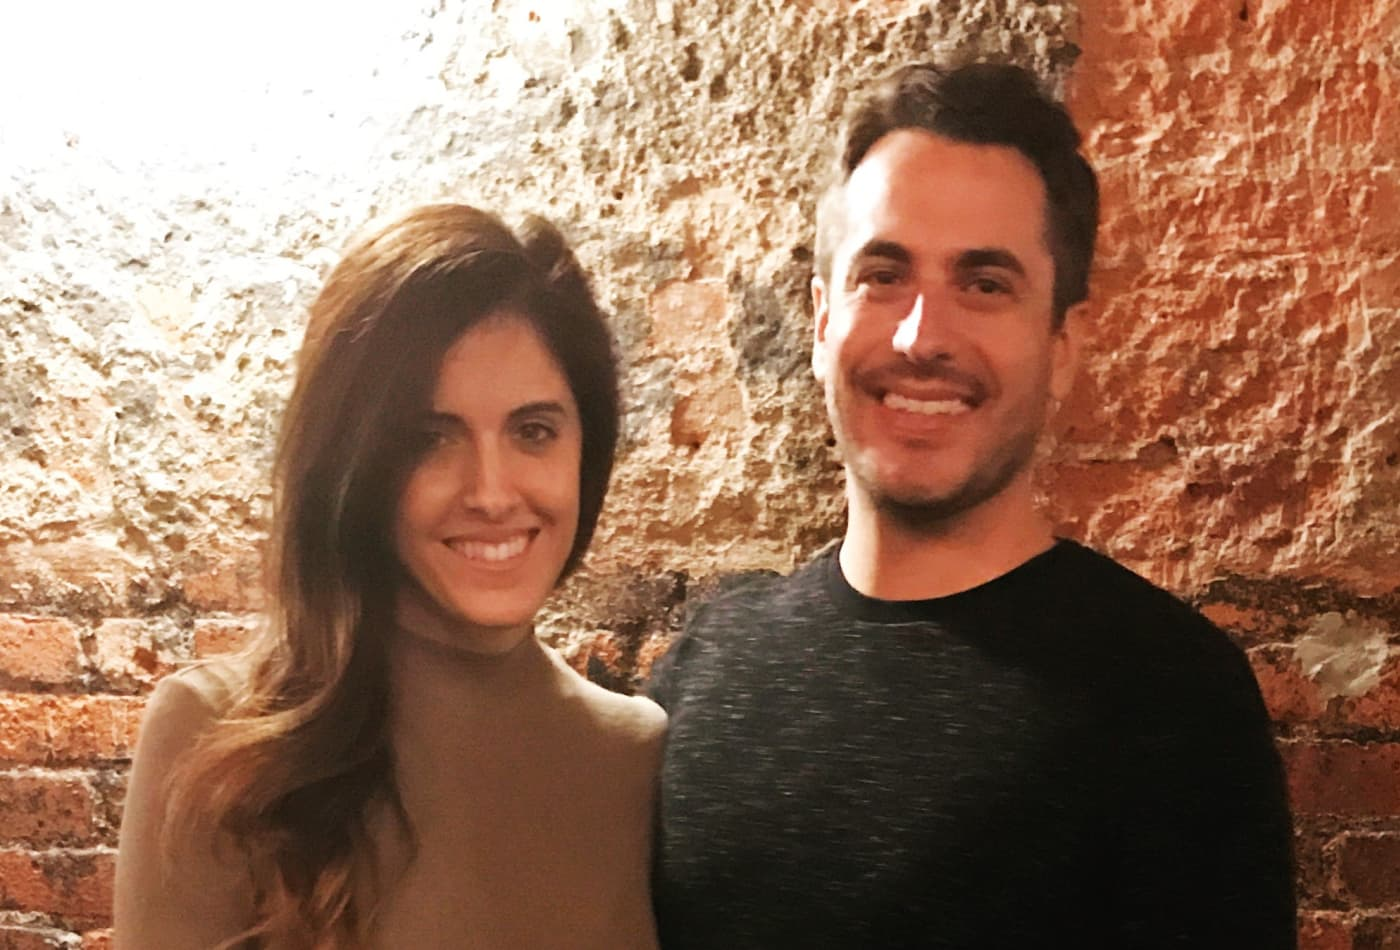 This power couple bought bitcoin in 2013, and just donated all their gains to a cancer hospital